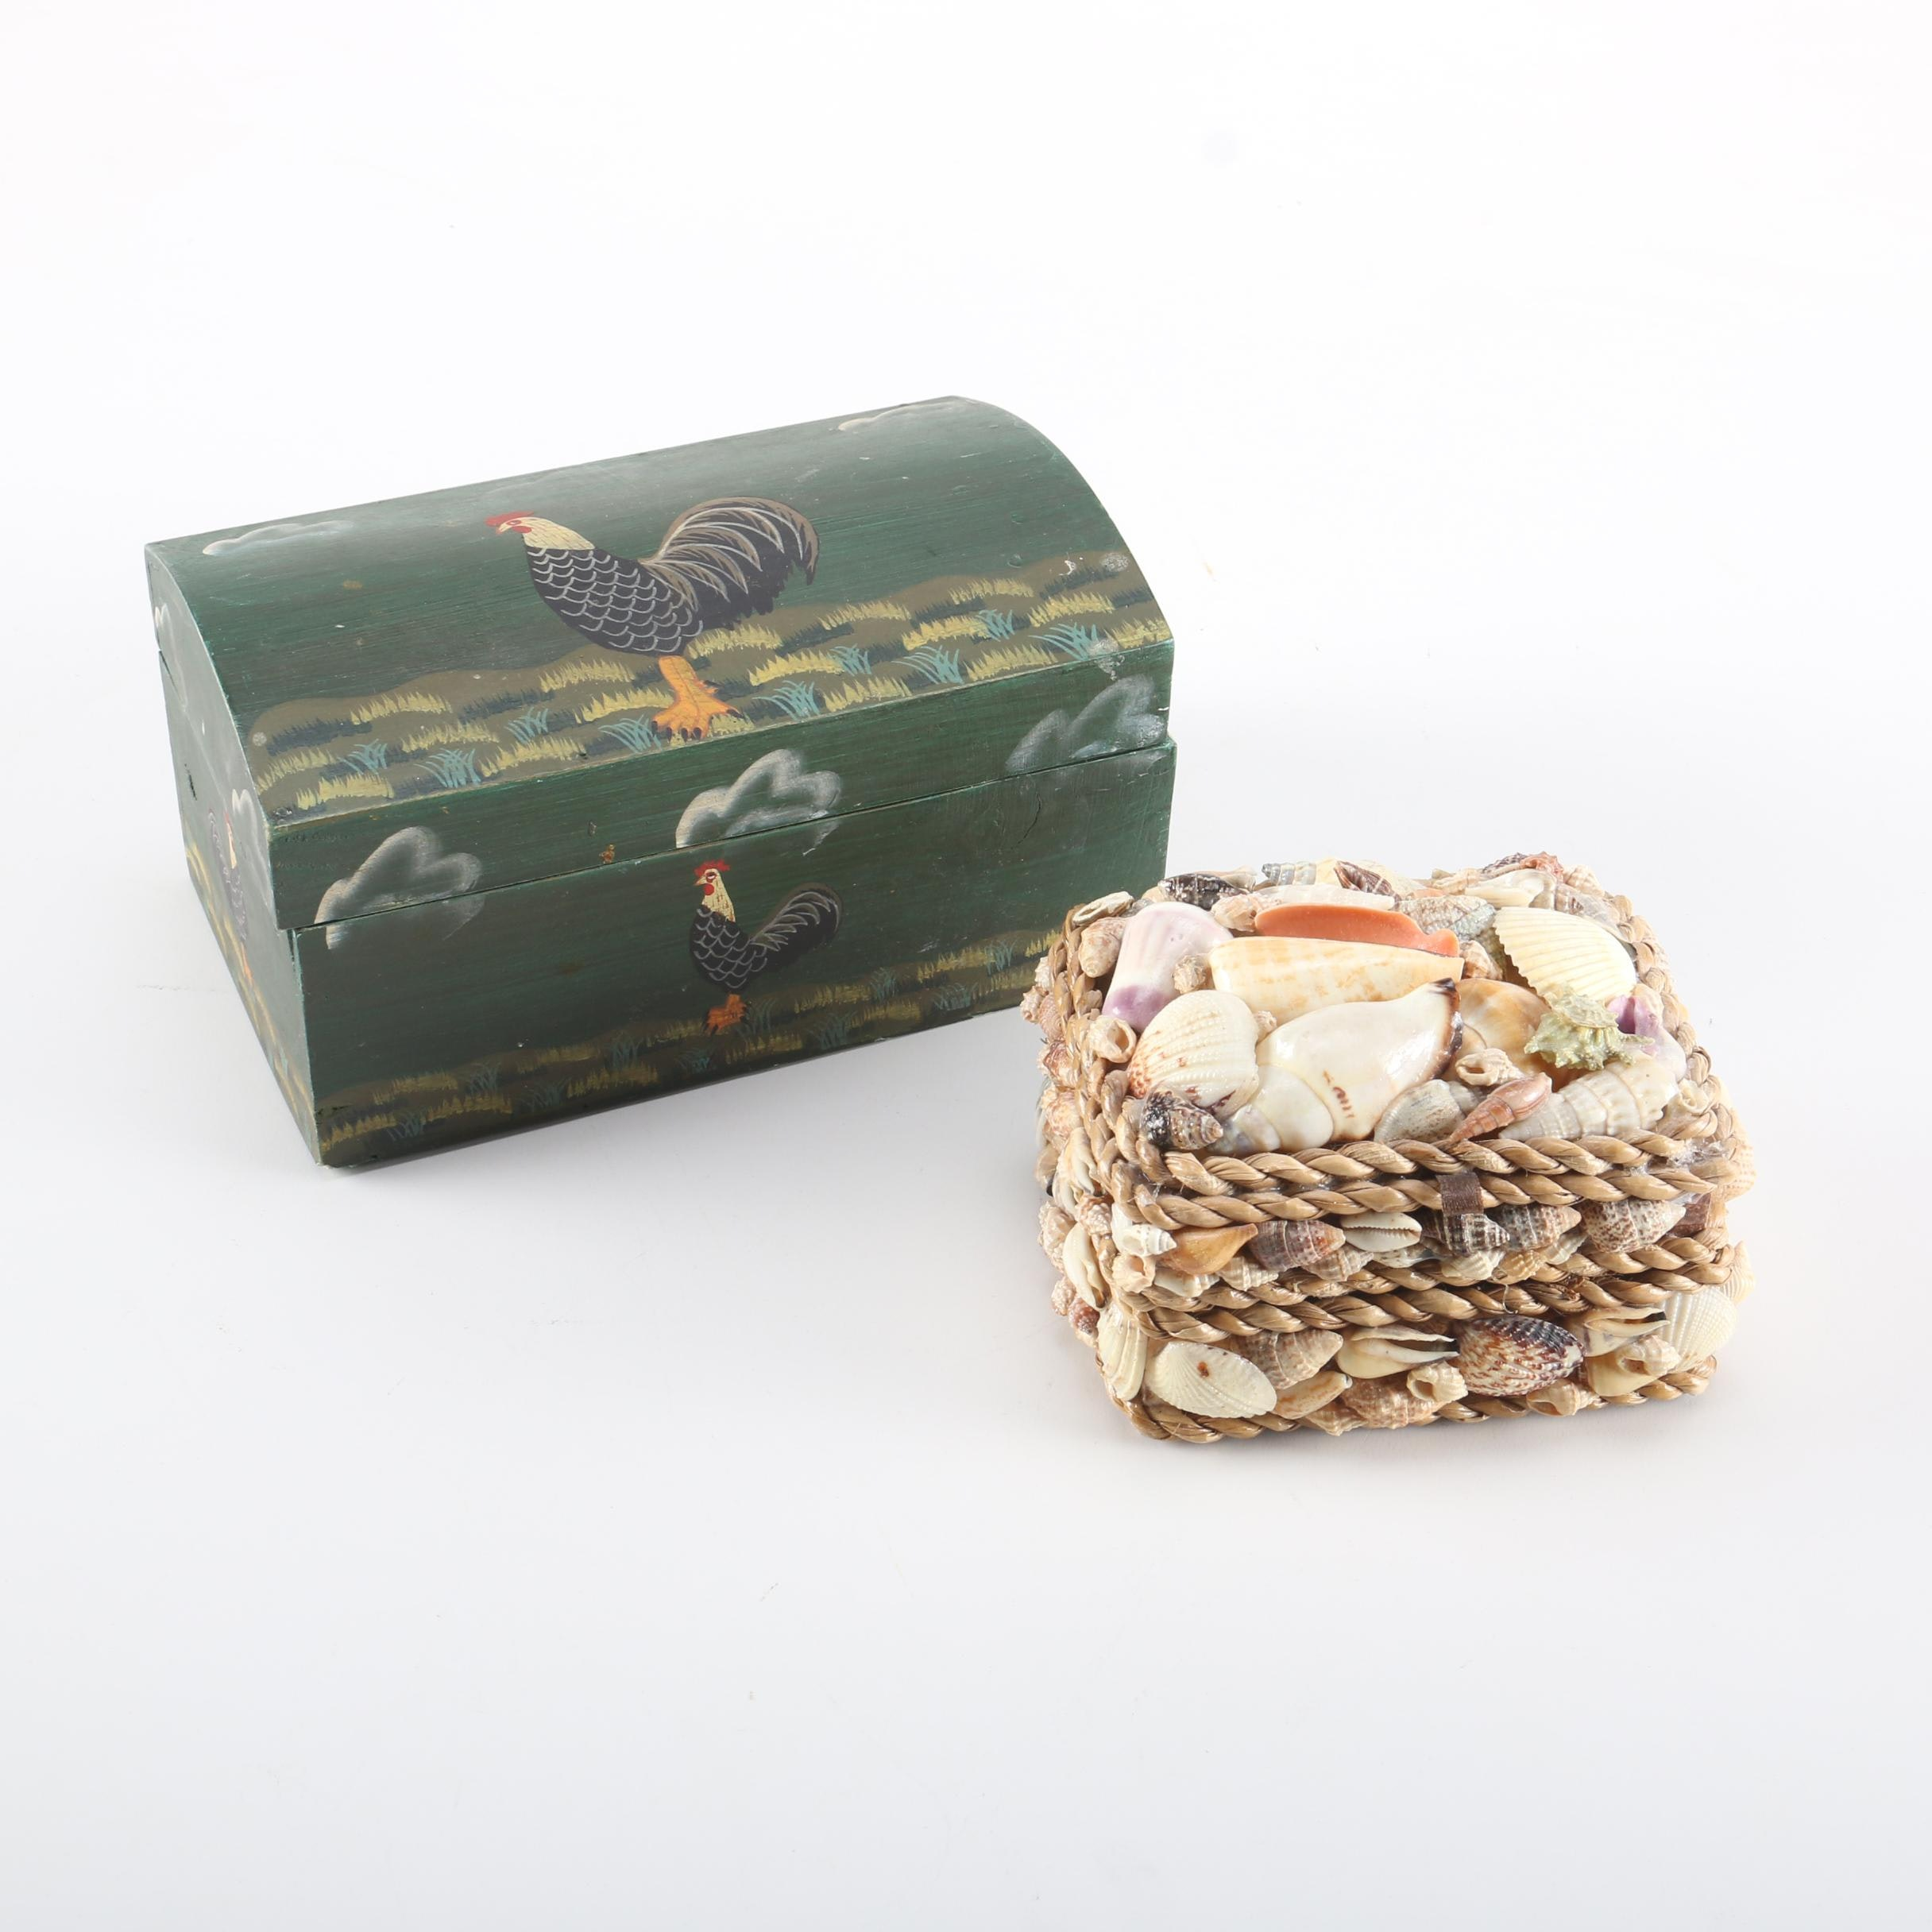 Hand-Painted Jewelry Box and Trinket Box With Shell